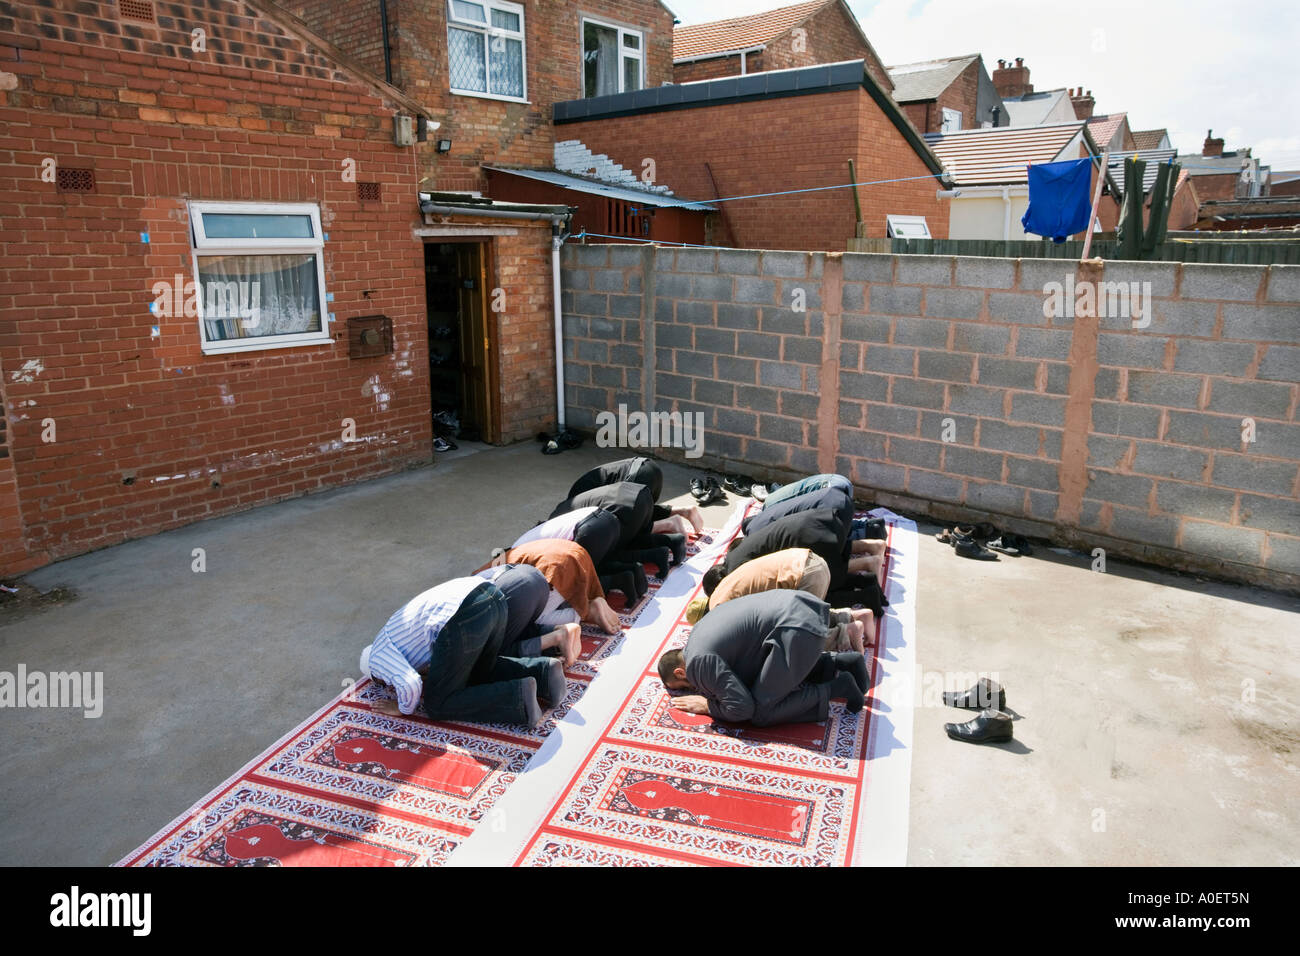 Friday prayers at the Tayyabah Mosque in the Ward End area of Birmingham UK - Stock Image